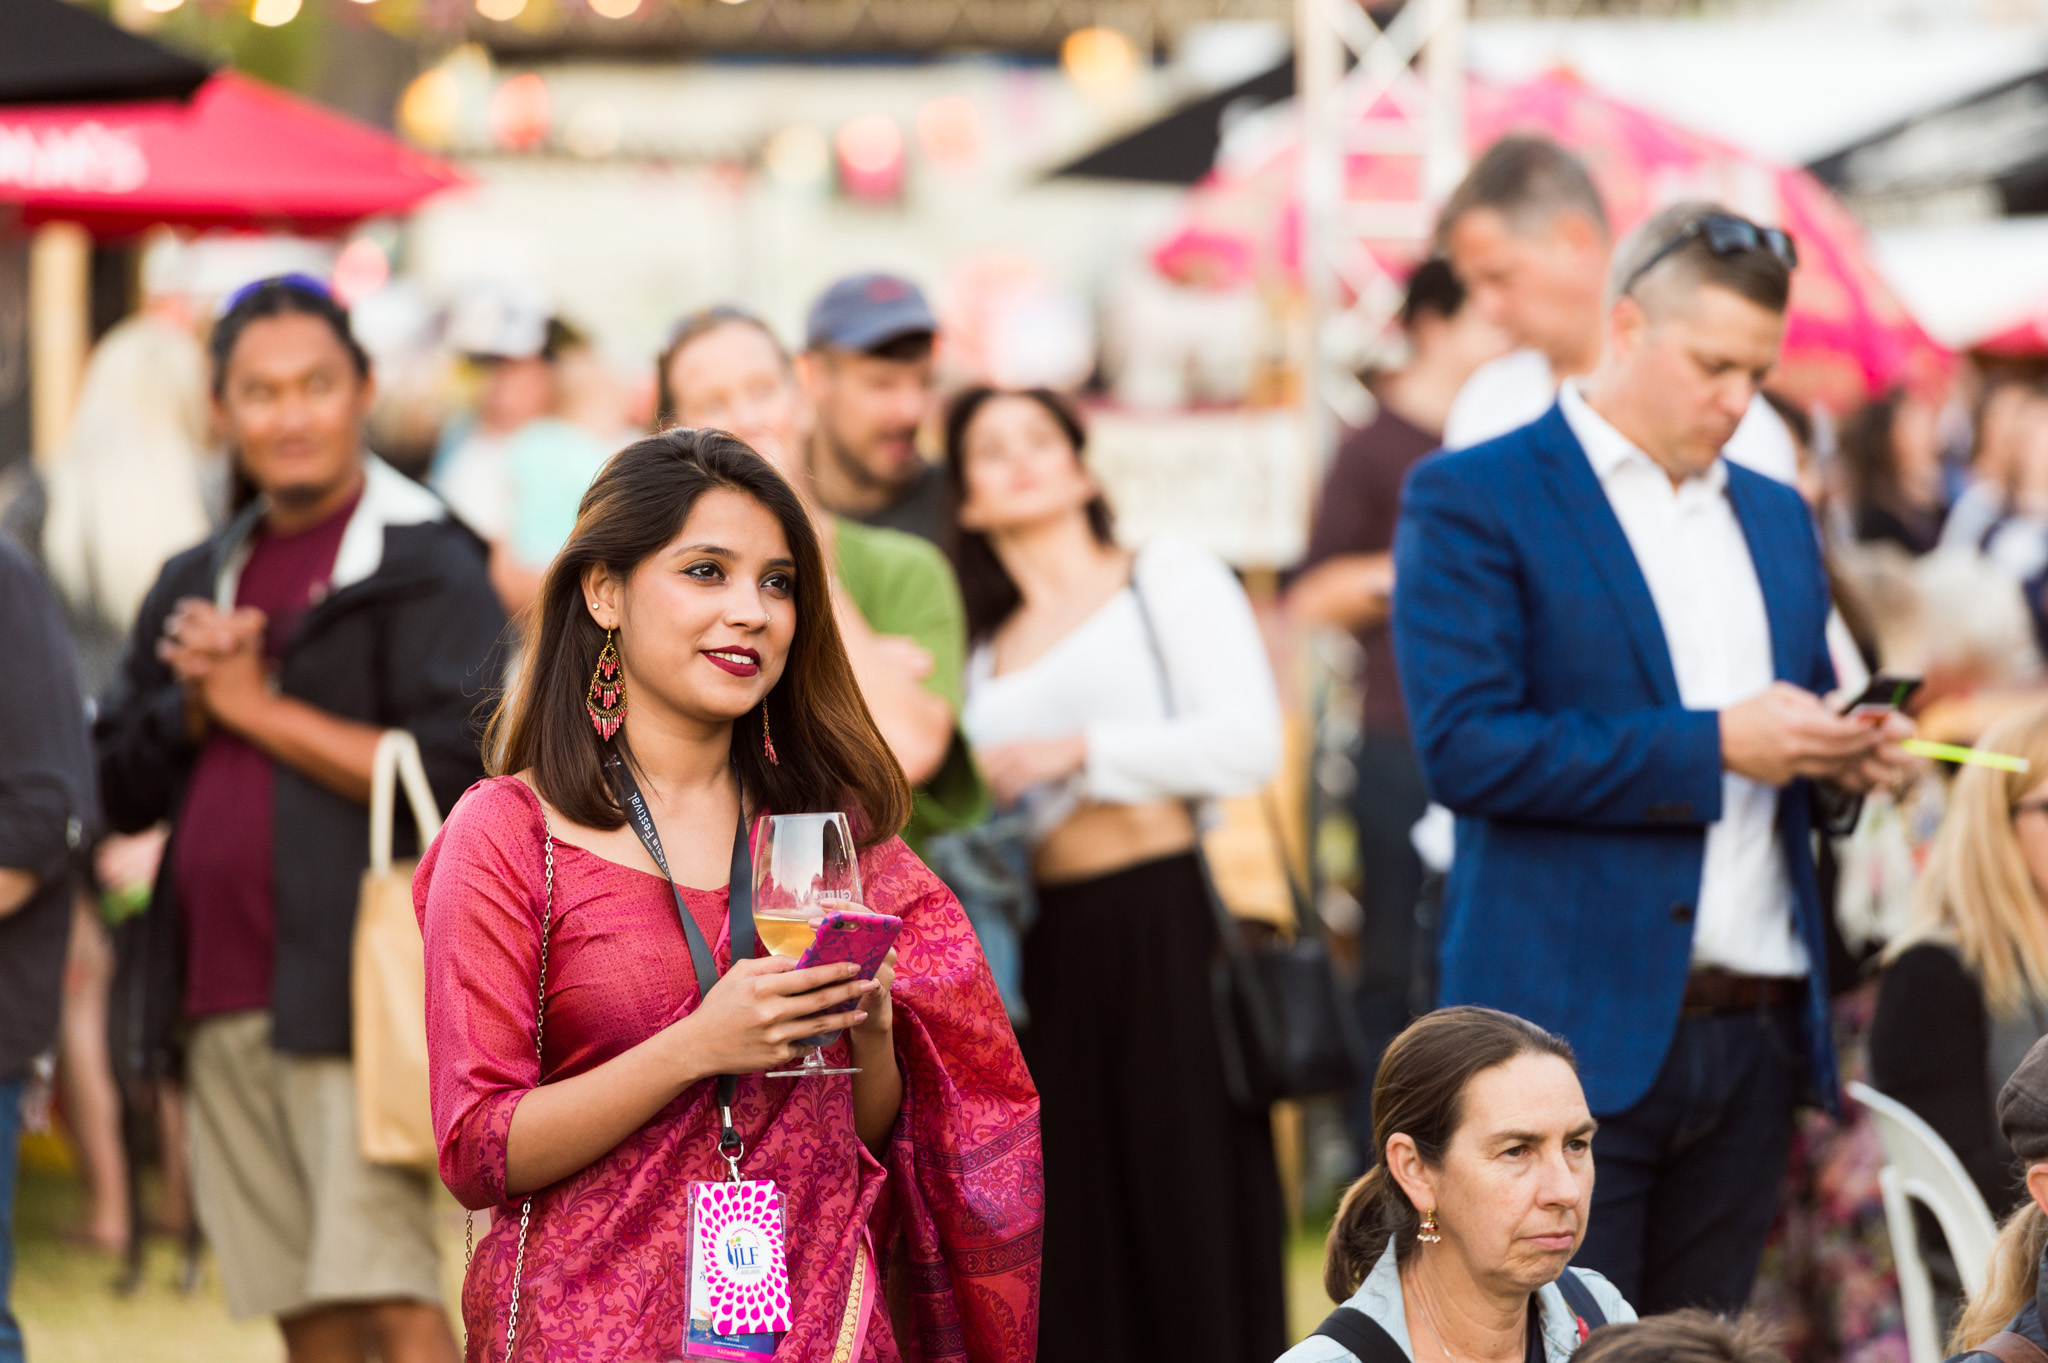 Jaipur Literature Festival, 'The Greatest Literature Show On Earth', Returns To Adelaide This November